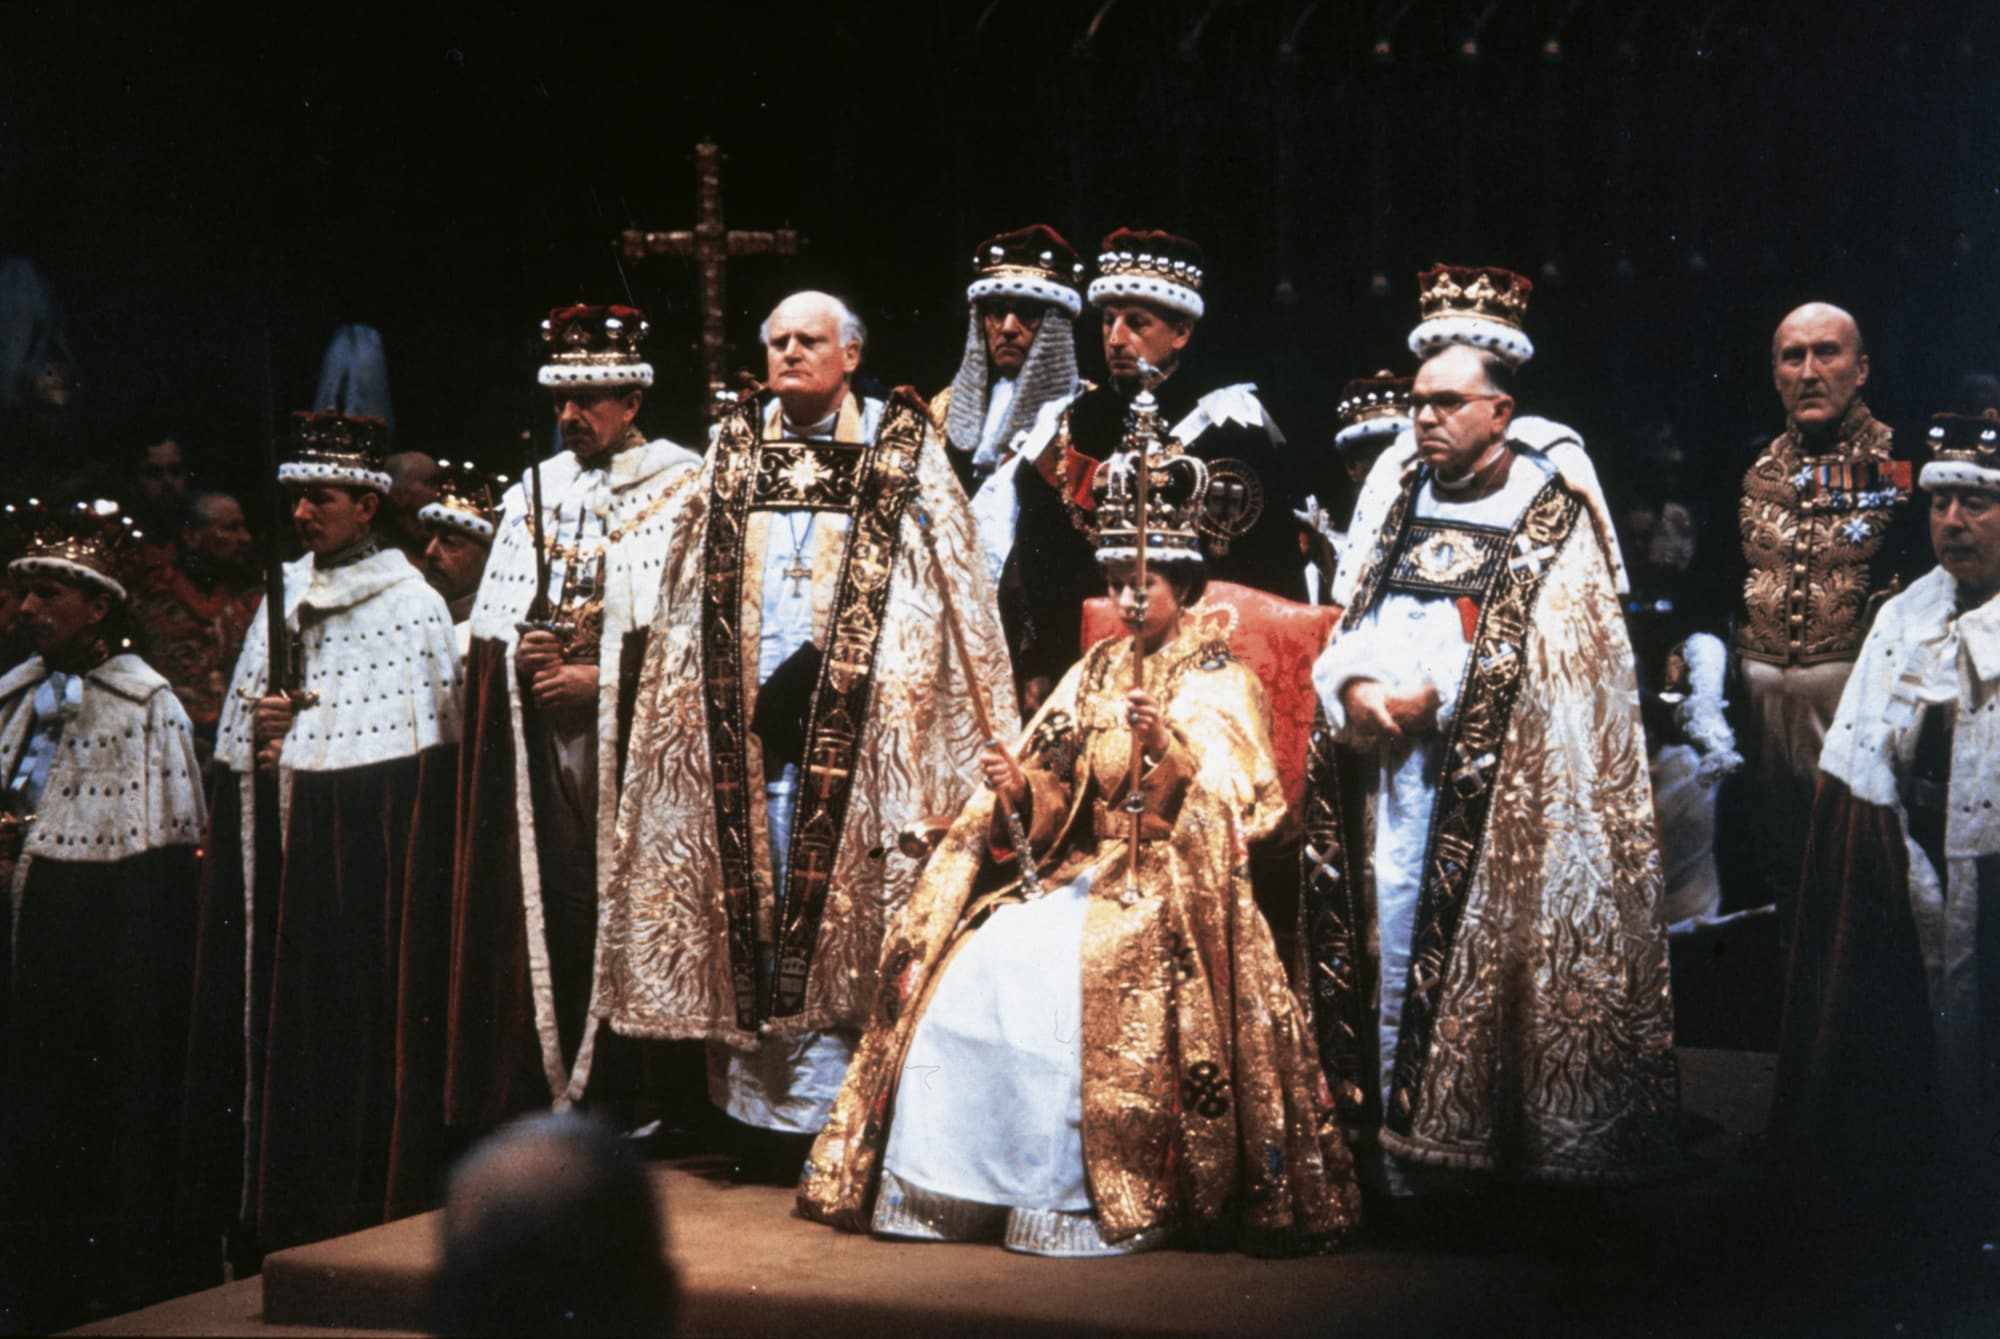 Высший свет. Галерея - Страница 19 2_queen-elizabeth-ii-after-her-coronation-ceremony-in-westminster-abbey-london-photo-by-hulton-archivegetty-images